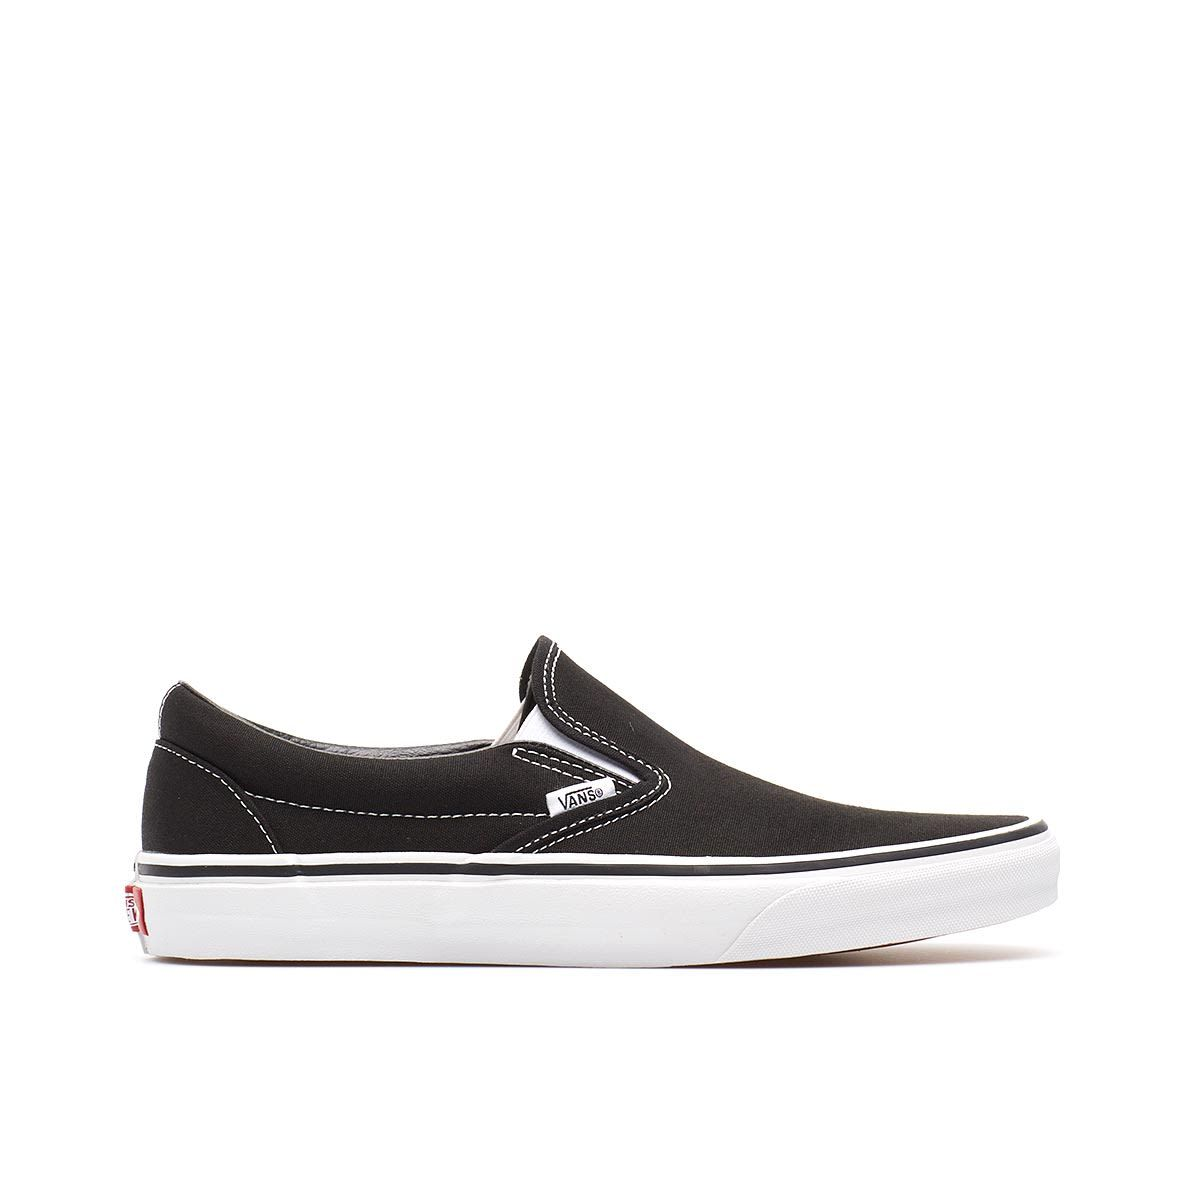 Classic slip-on from the Vans collection in black